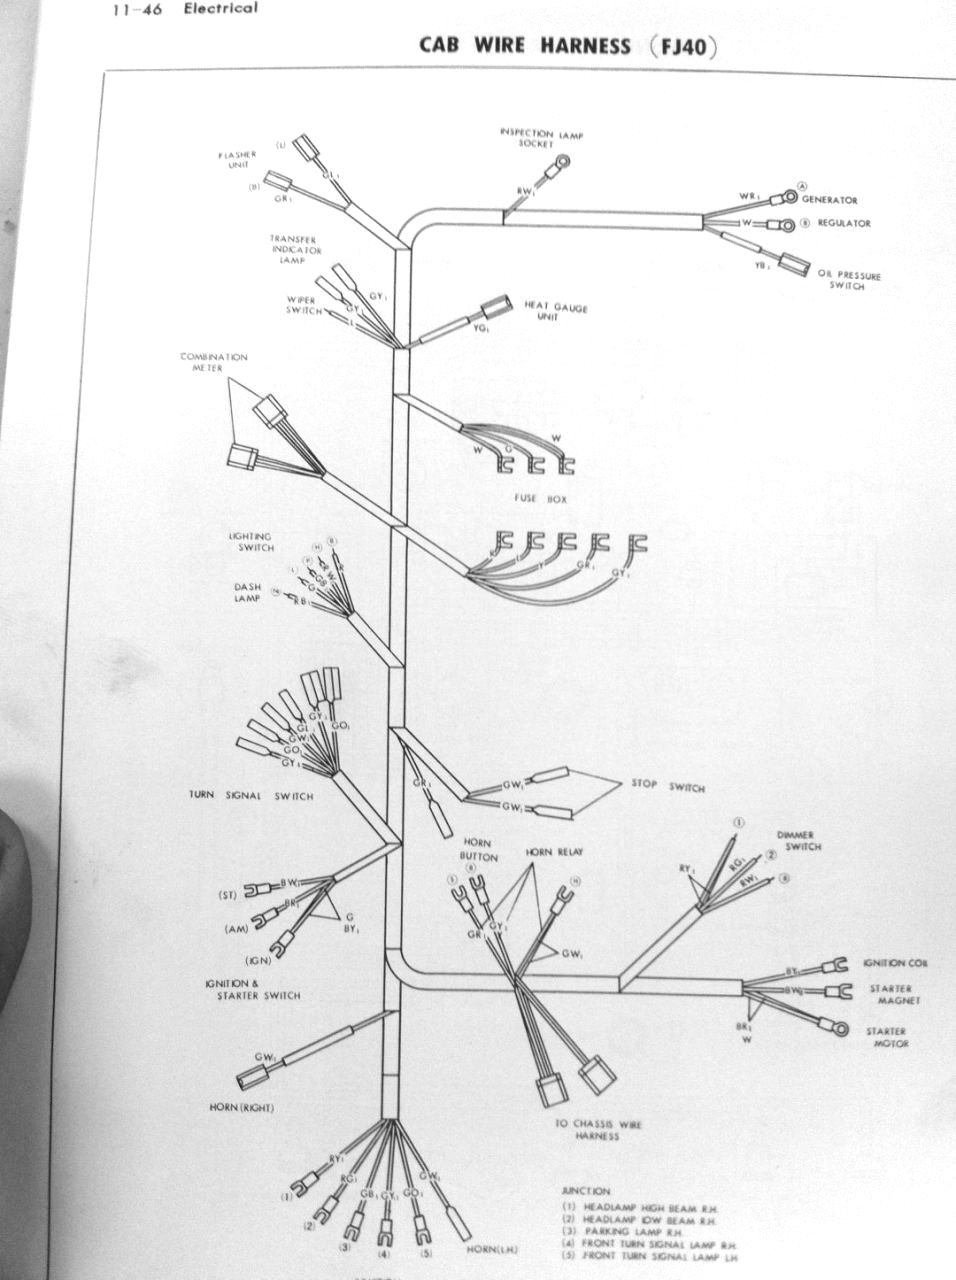 Incredible Coolermans Electrical Schematic And Fsm File Retrieval Wiring Cloud Faunaidewilluminateatxorg